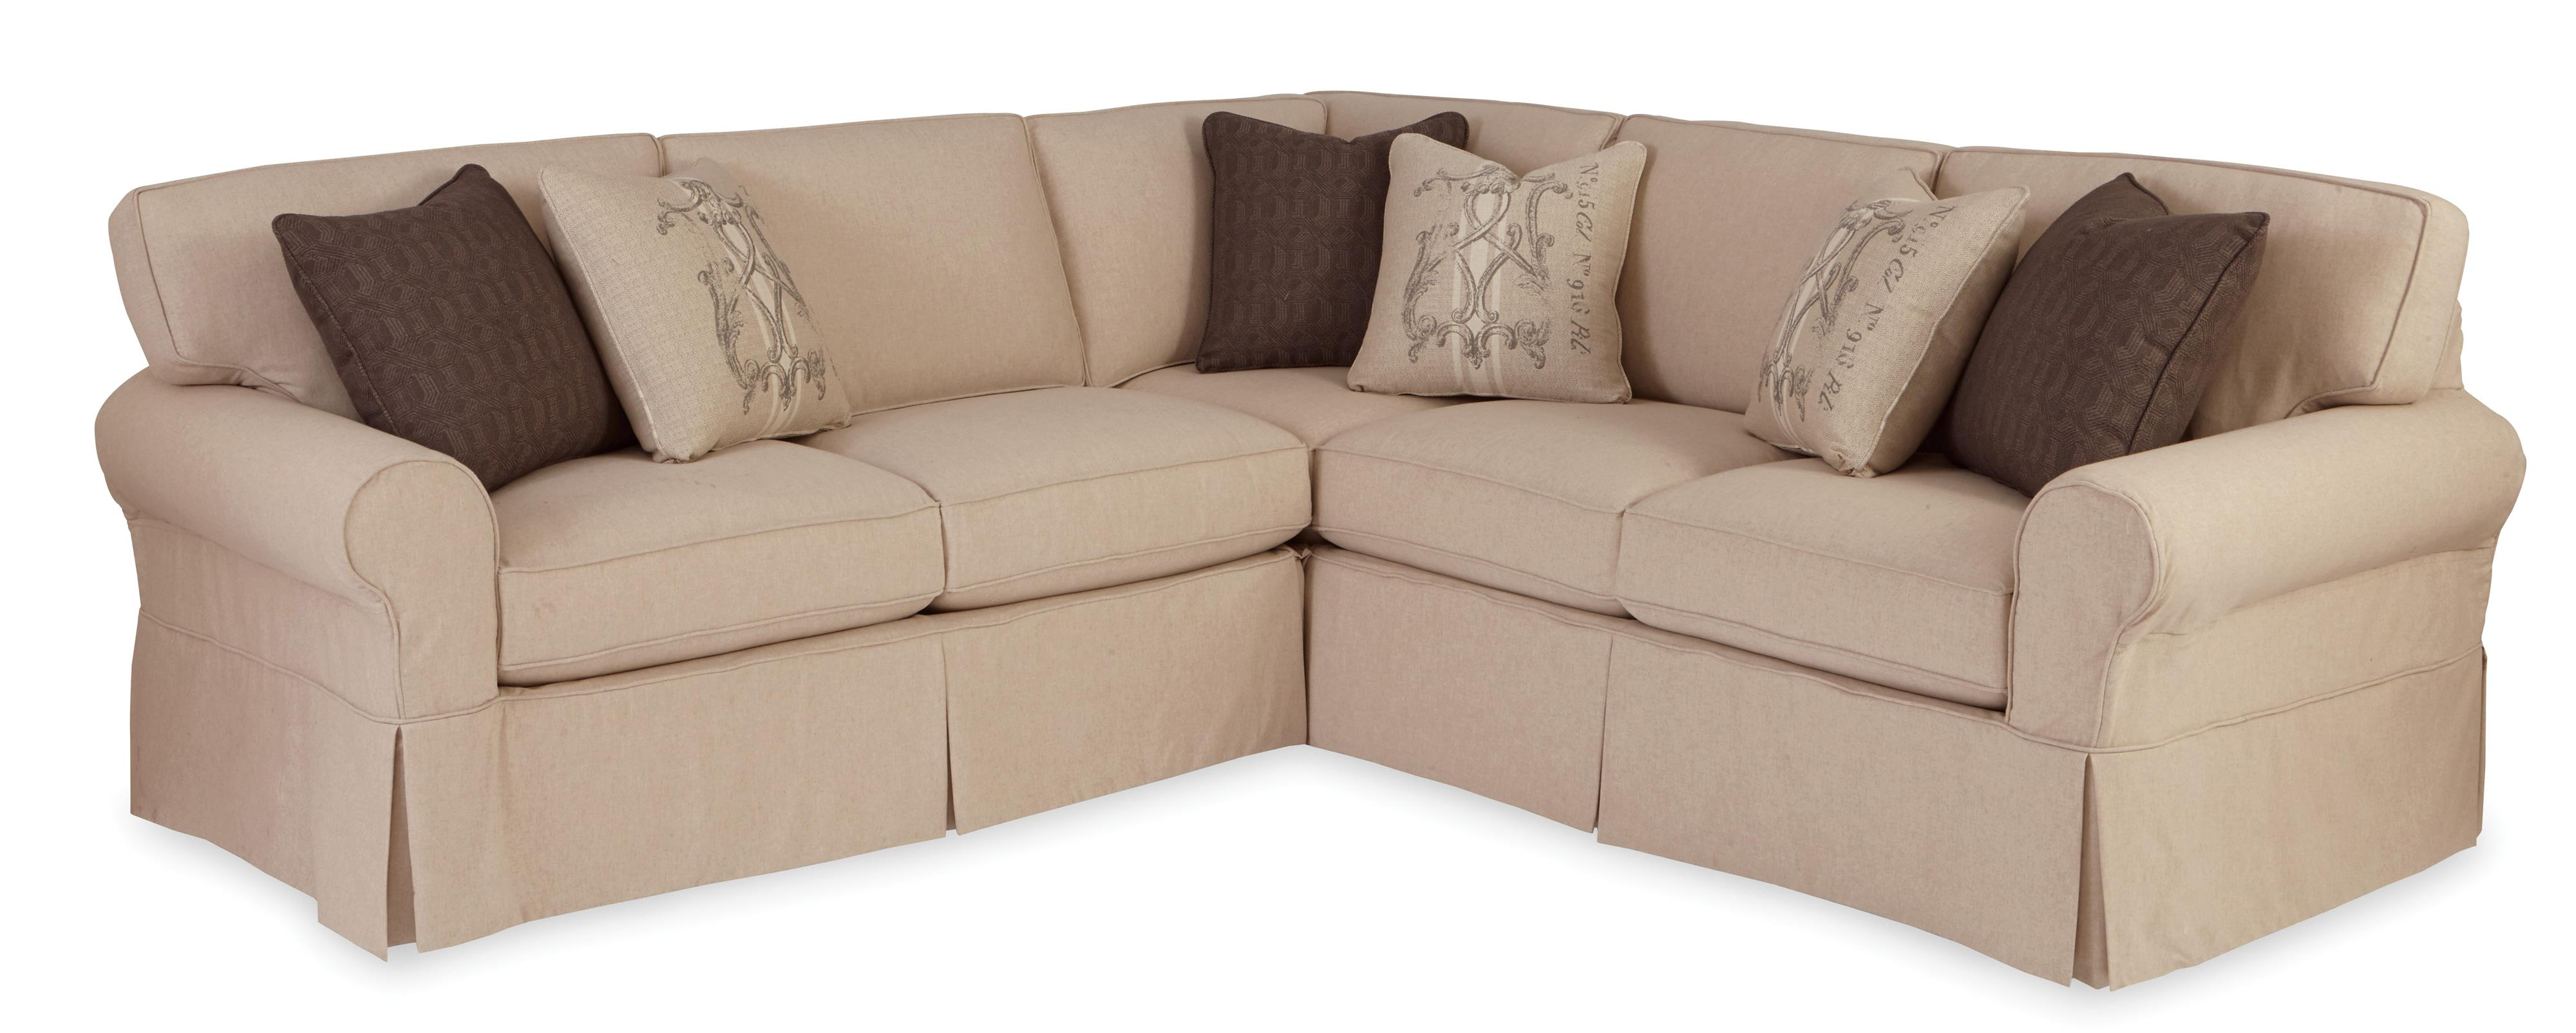 Two Piece Slipcovered Sectional Sofa with RAF